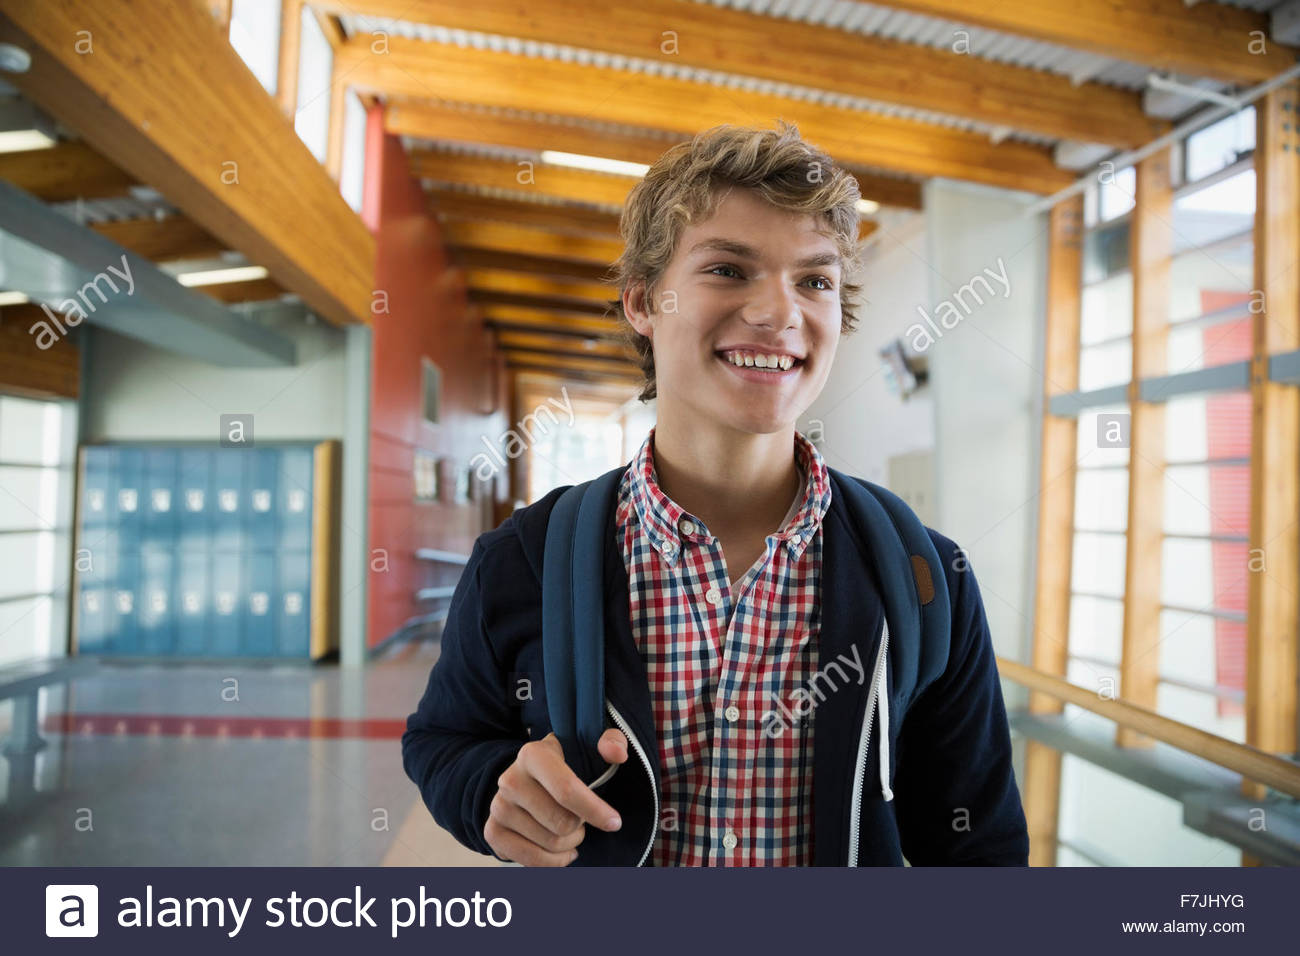 High school student Smiling in corridor Photo Stock